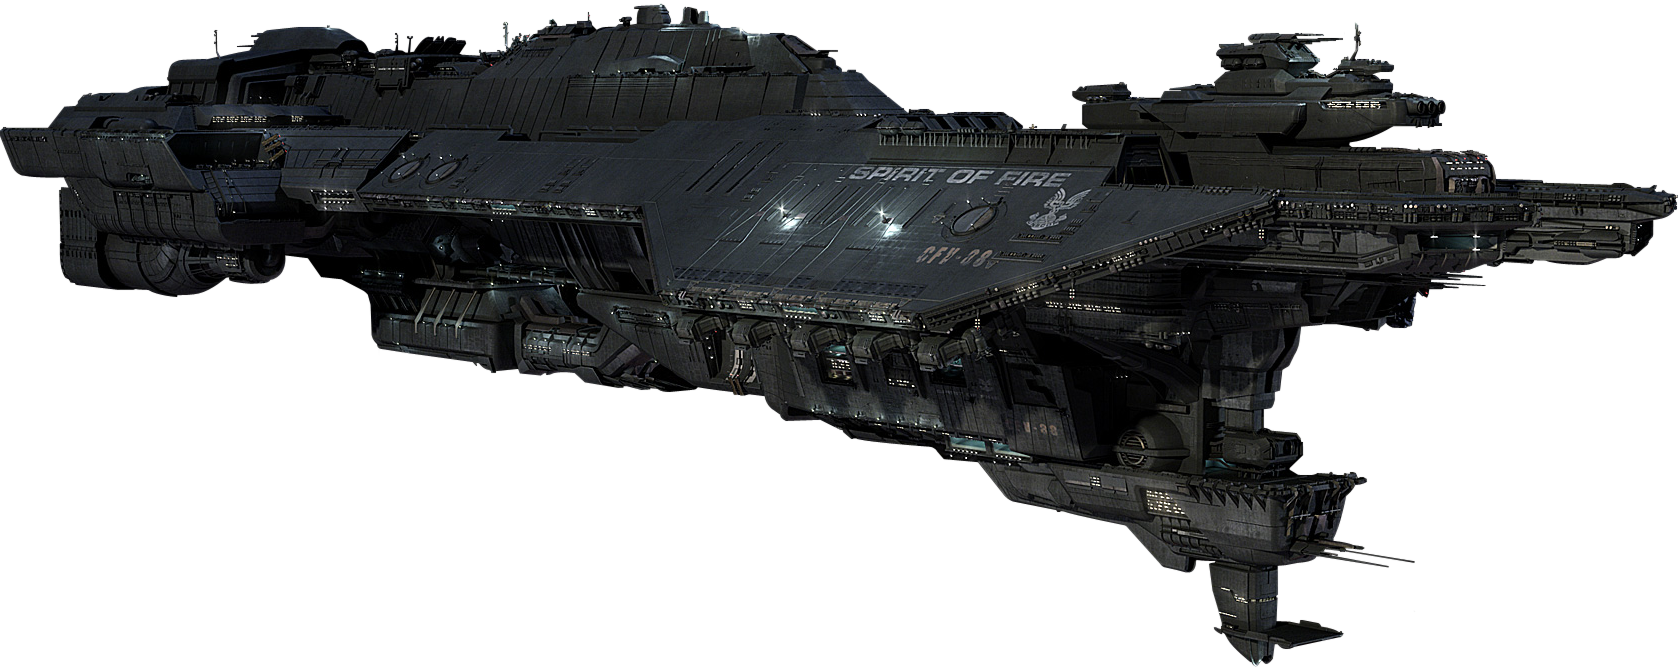 Halo UNSC Spirit of fire.png